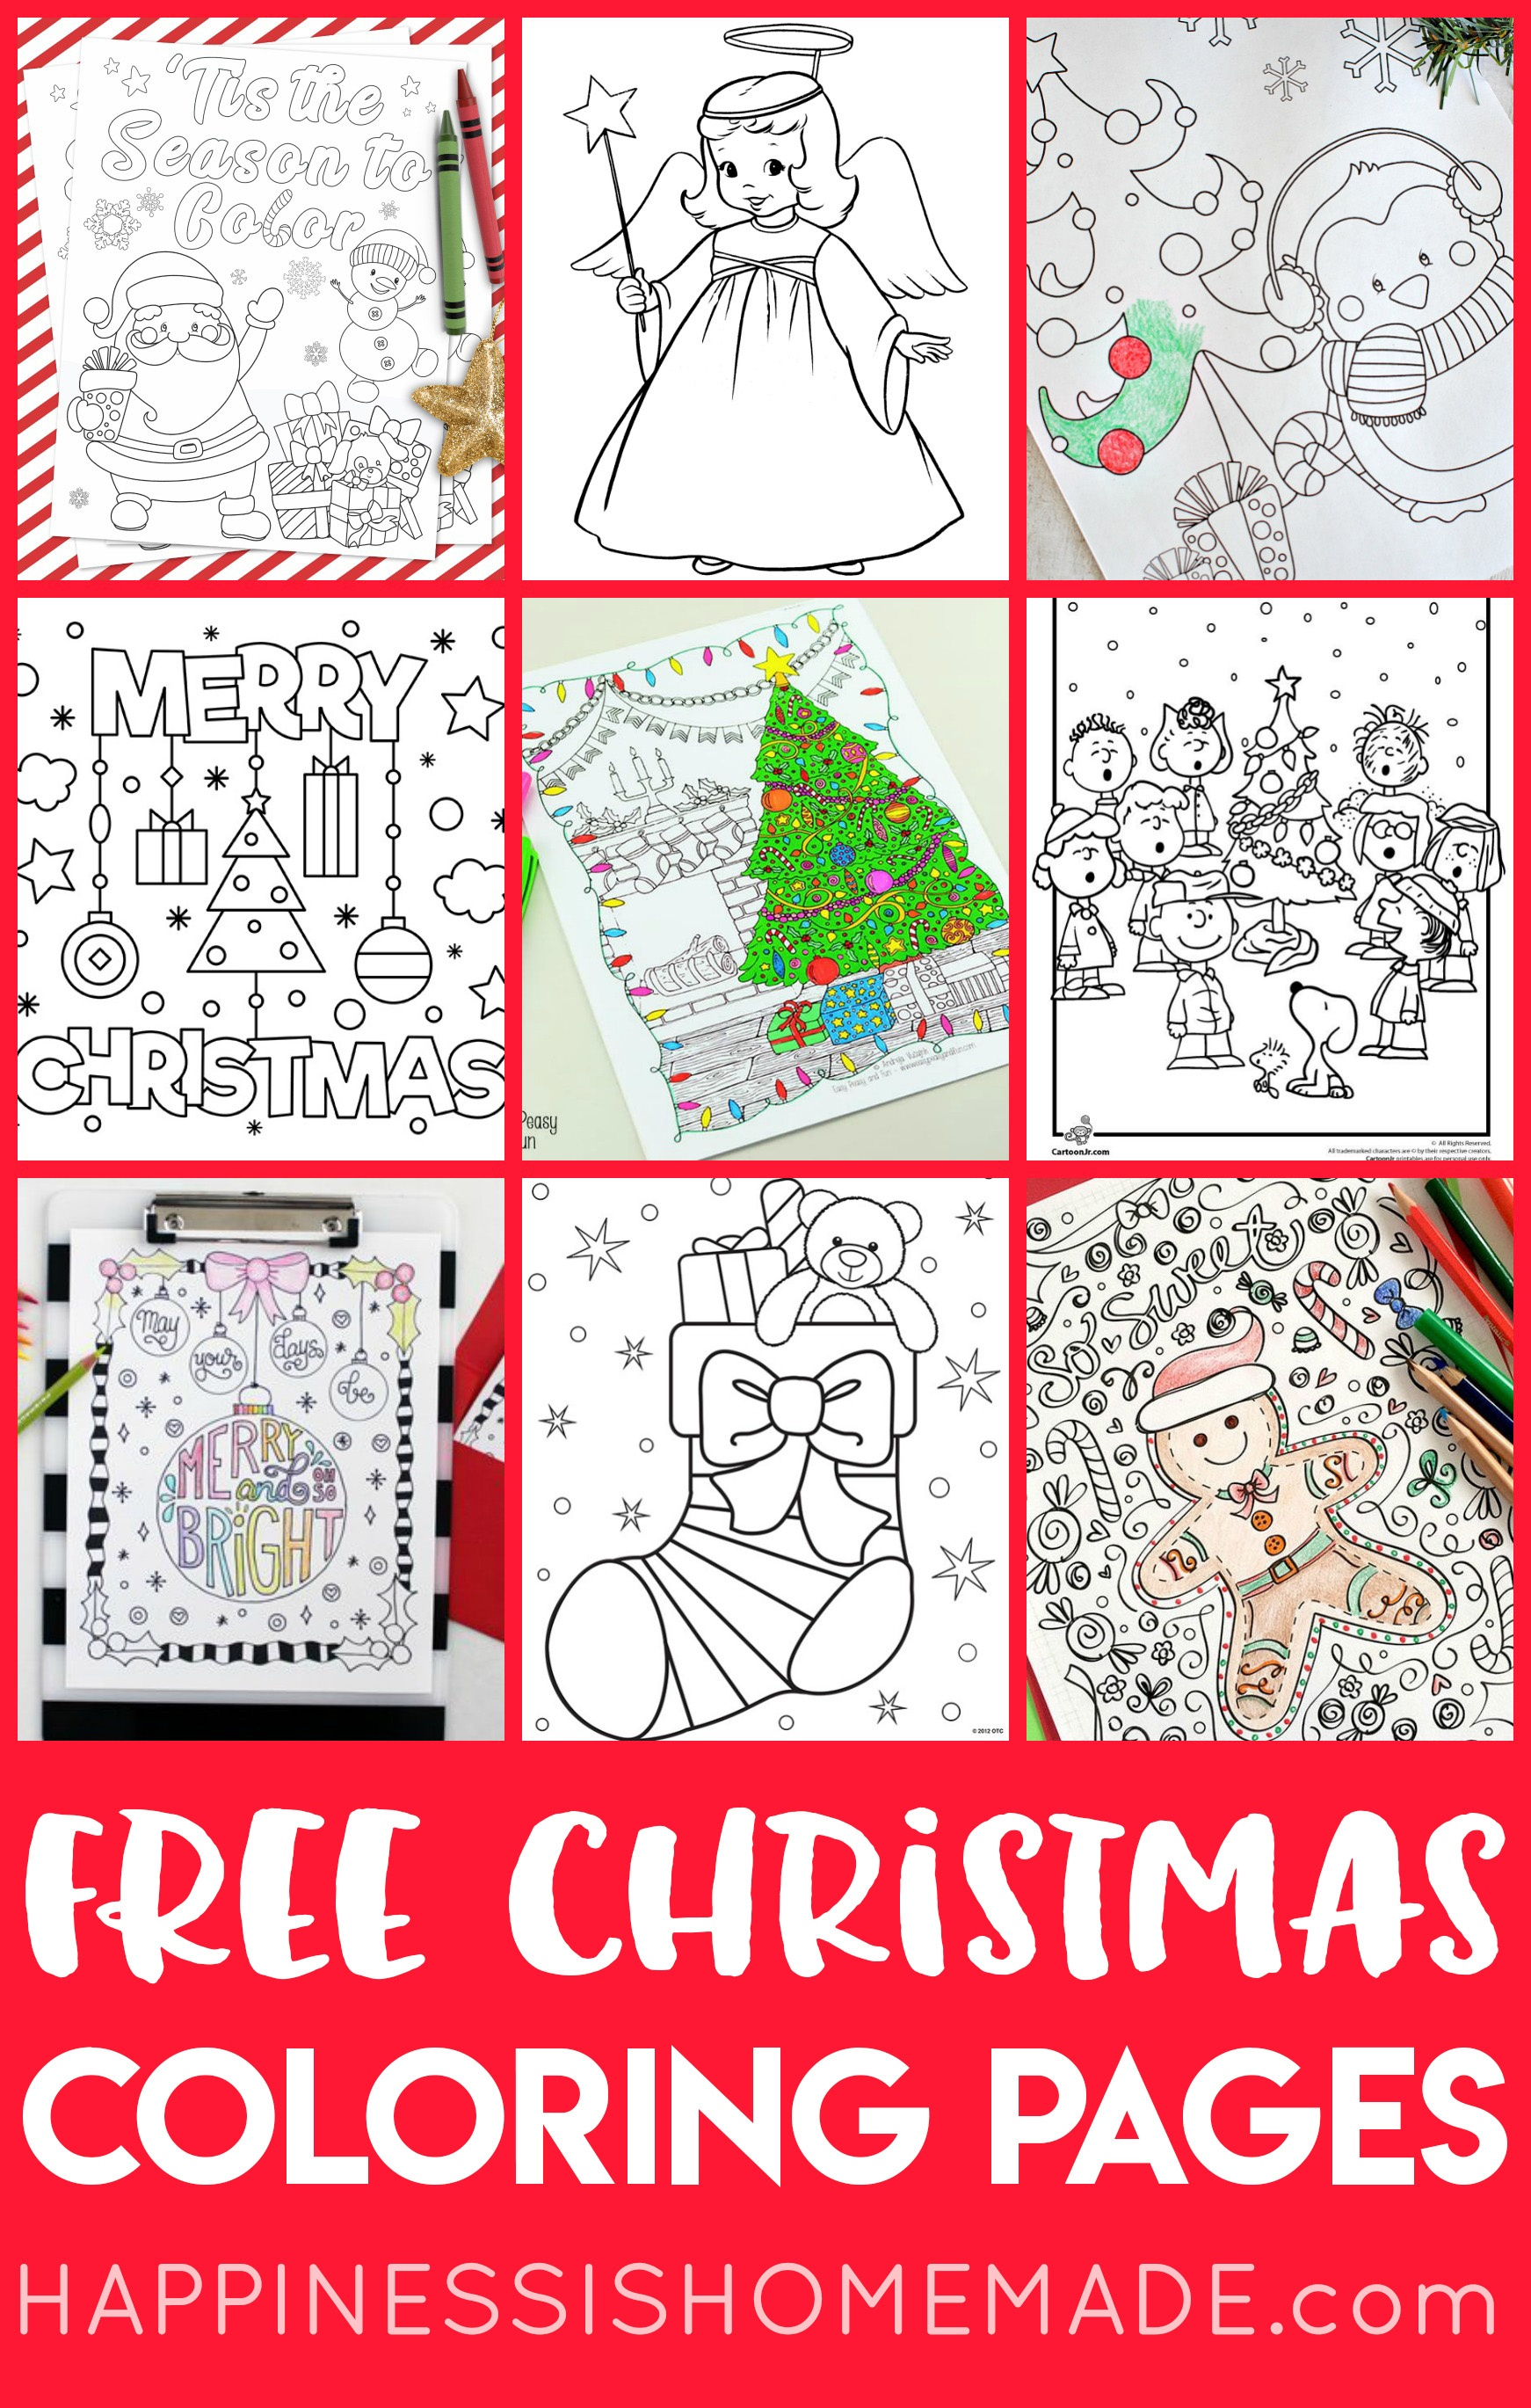 Free Christmas Coloring Pages For Adults And Kids - Happiness Is - Christmas Pictures To Color Free Printable